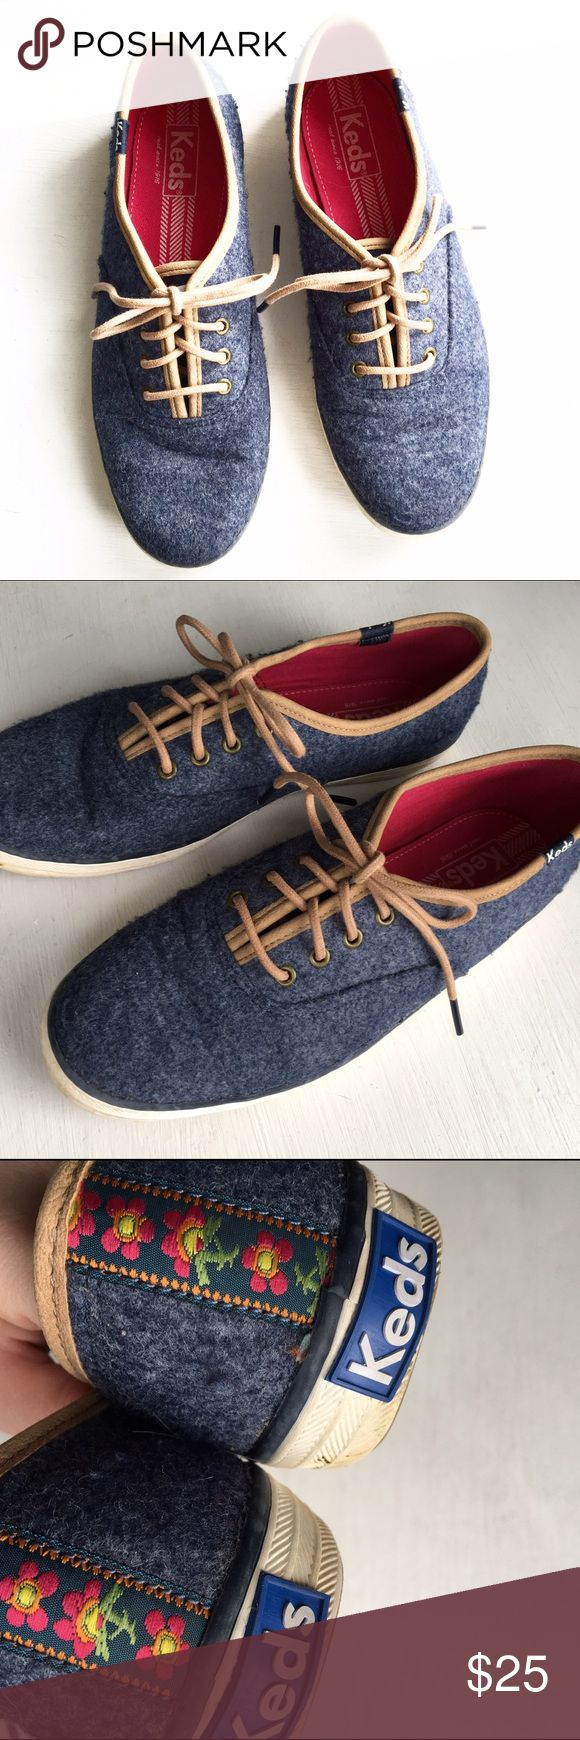 Blue Felt Lace Up Keds Sneakers Size 6.5. Please see all pictures for an accurate description of condition. Minimal normal wear. *0105170300* Keds Shoes Sneakers